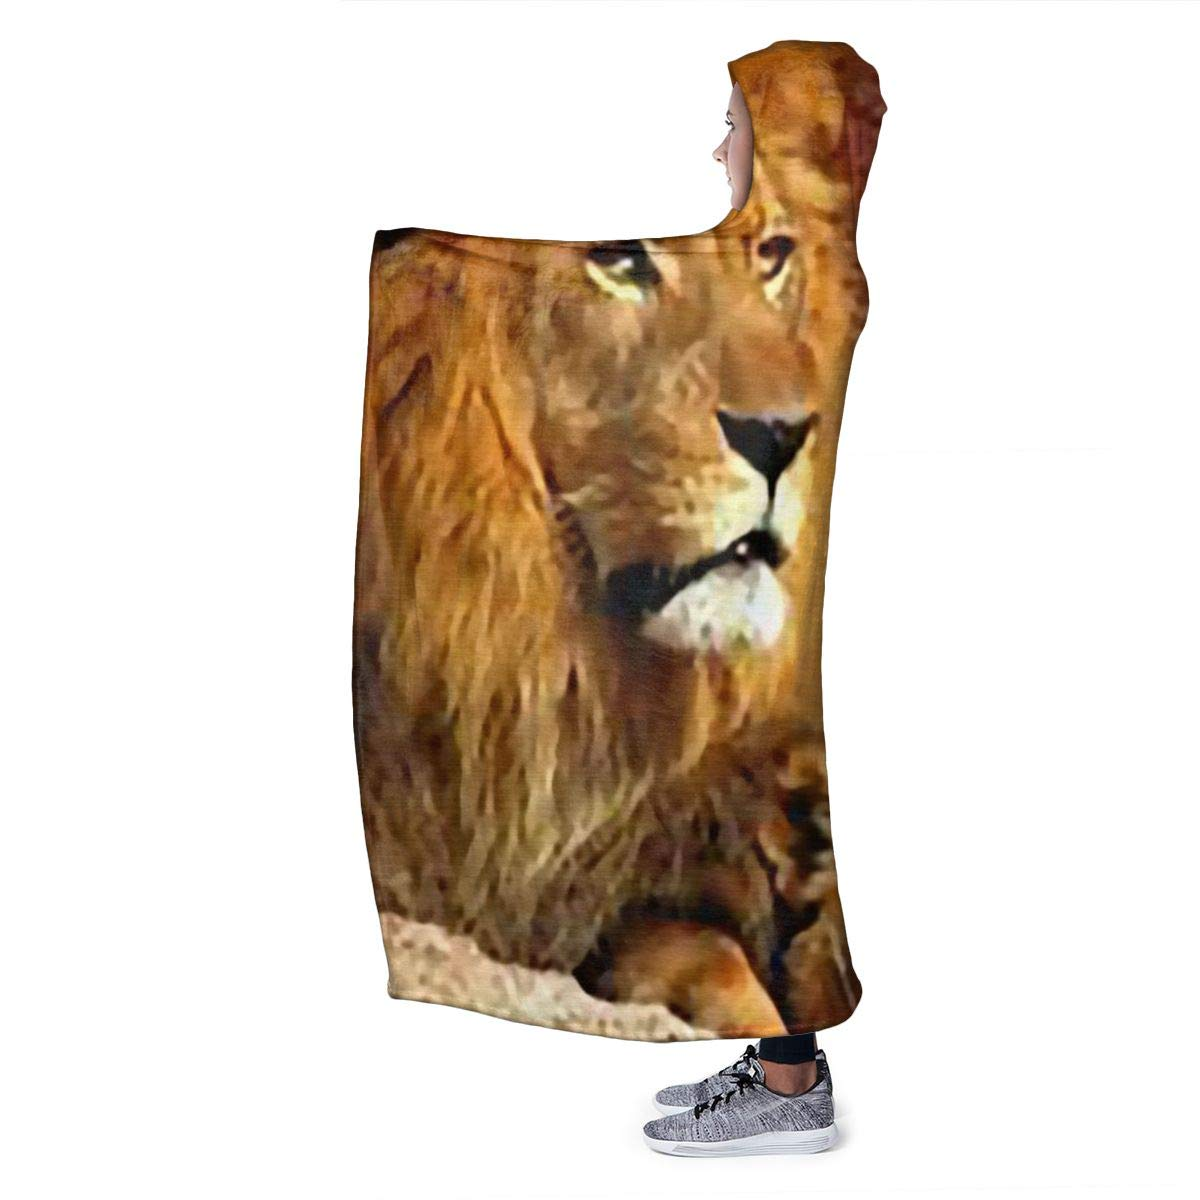 STWINW African Savannah Lion Womens Hooded Blanket Super Soft Flannel Blanket Hoodie Wearable Blanket50 x 40 Hooded Robe Hooded Cloak for Sofa Couch Office Living Room